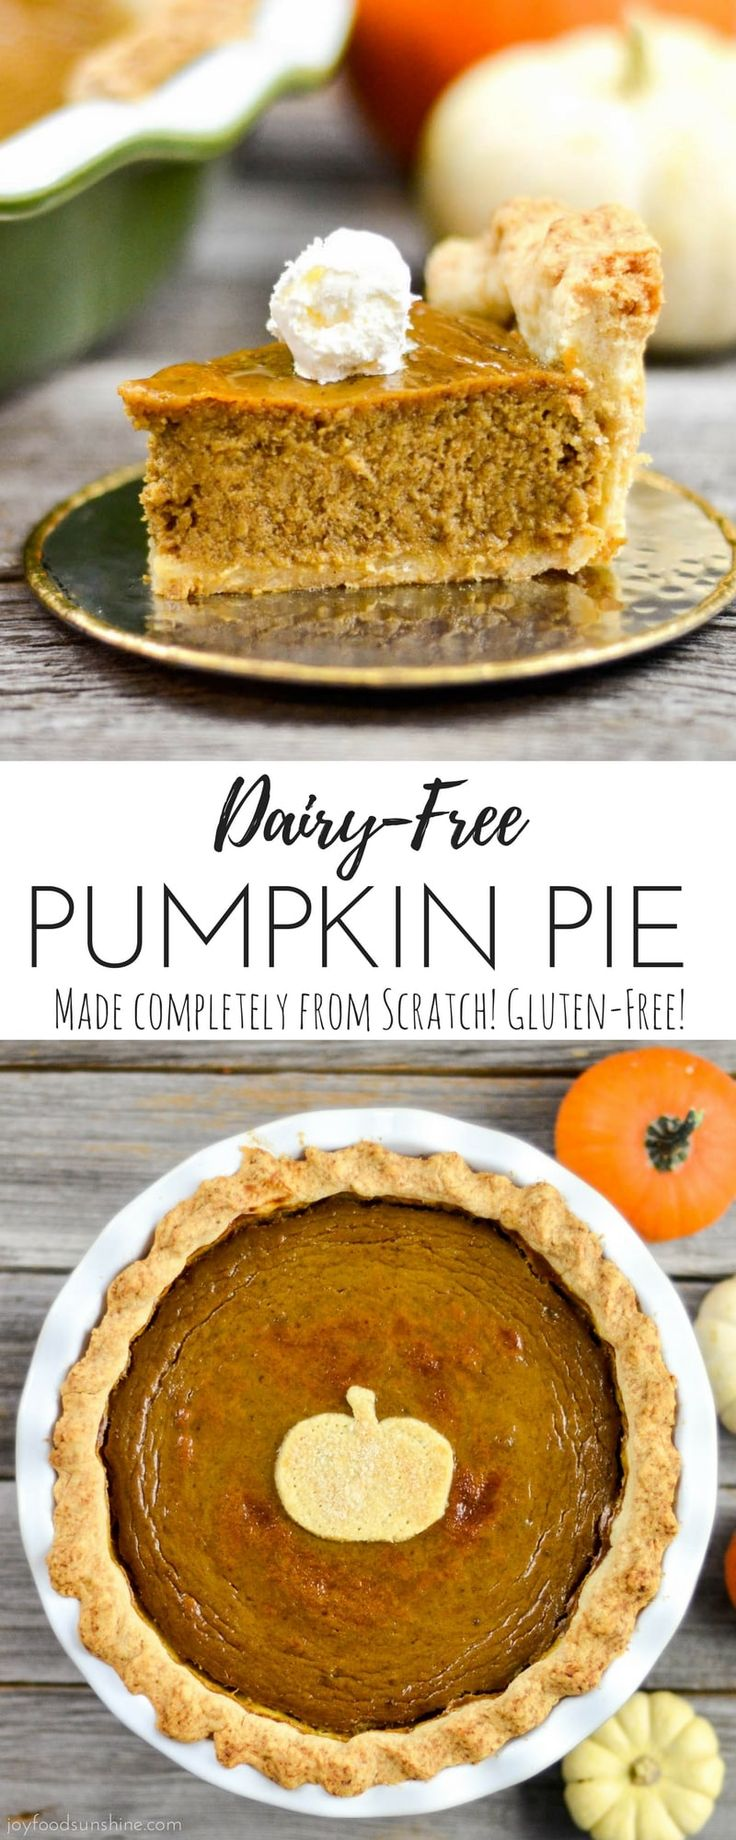 Homemade Dairy-Free Pumpkin Pie recipe from scratch! NO sweetened condensed milk! Fresh, delicious & the perfect Thanksgiving dessert!